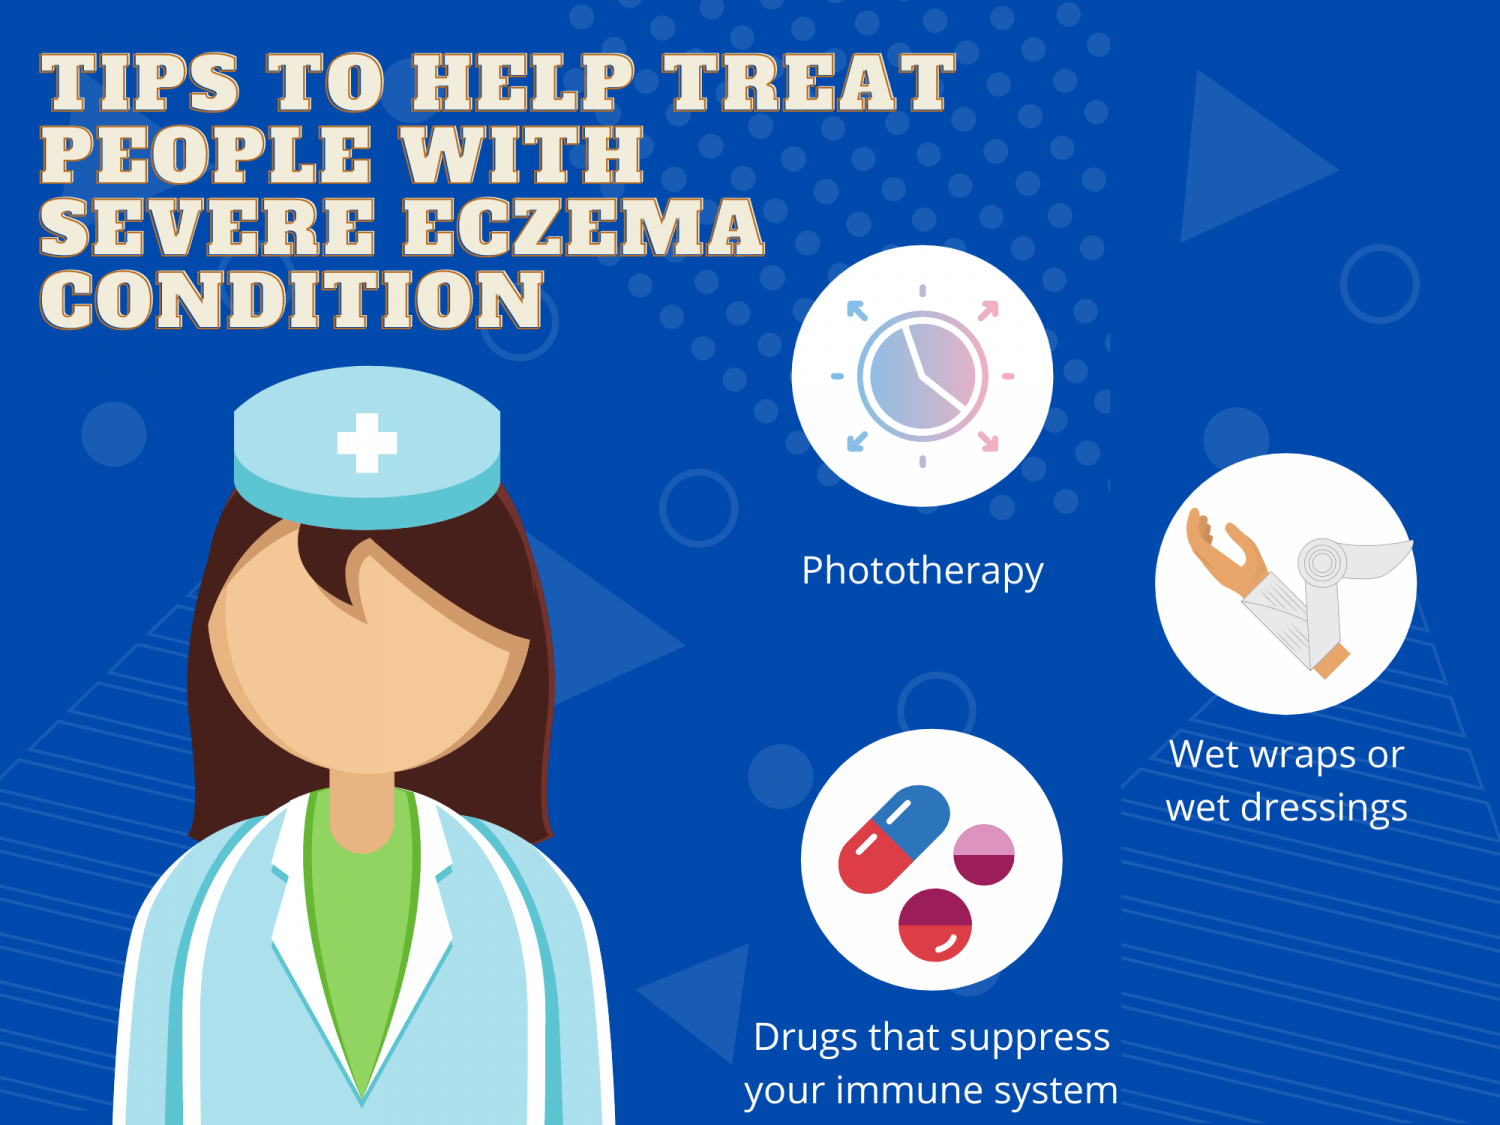 Tips To Help Treat People With Severe Eczema Condition Infographic